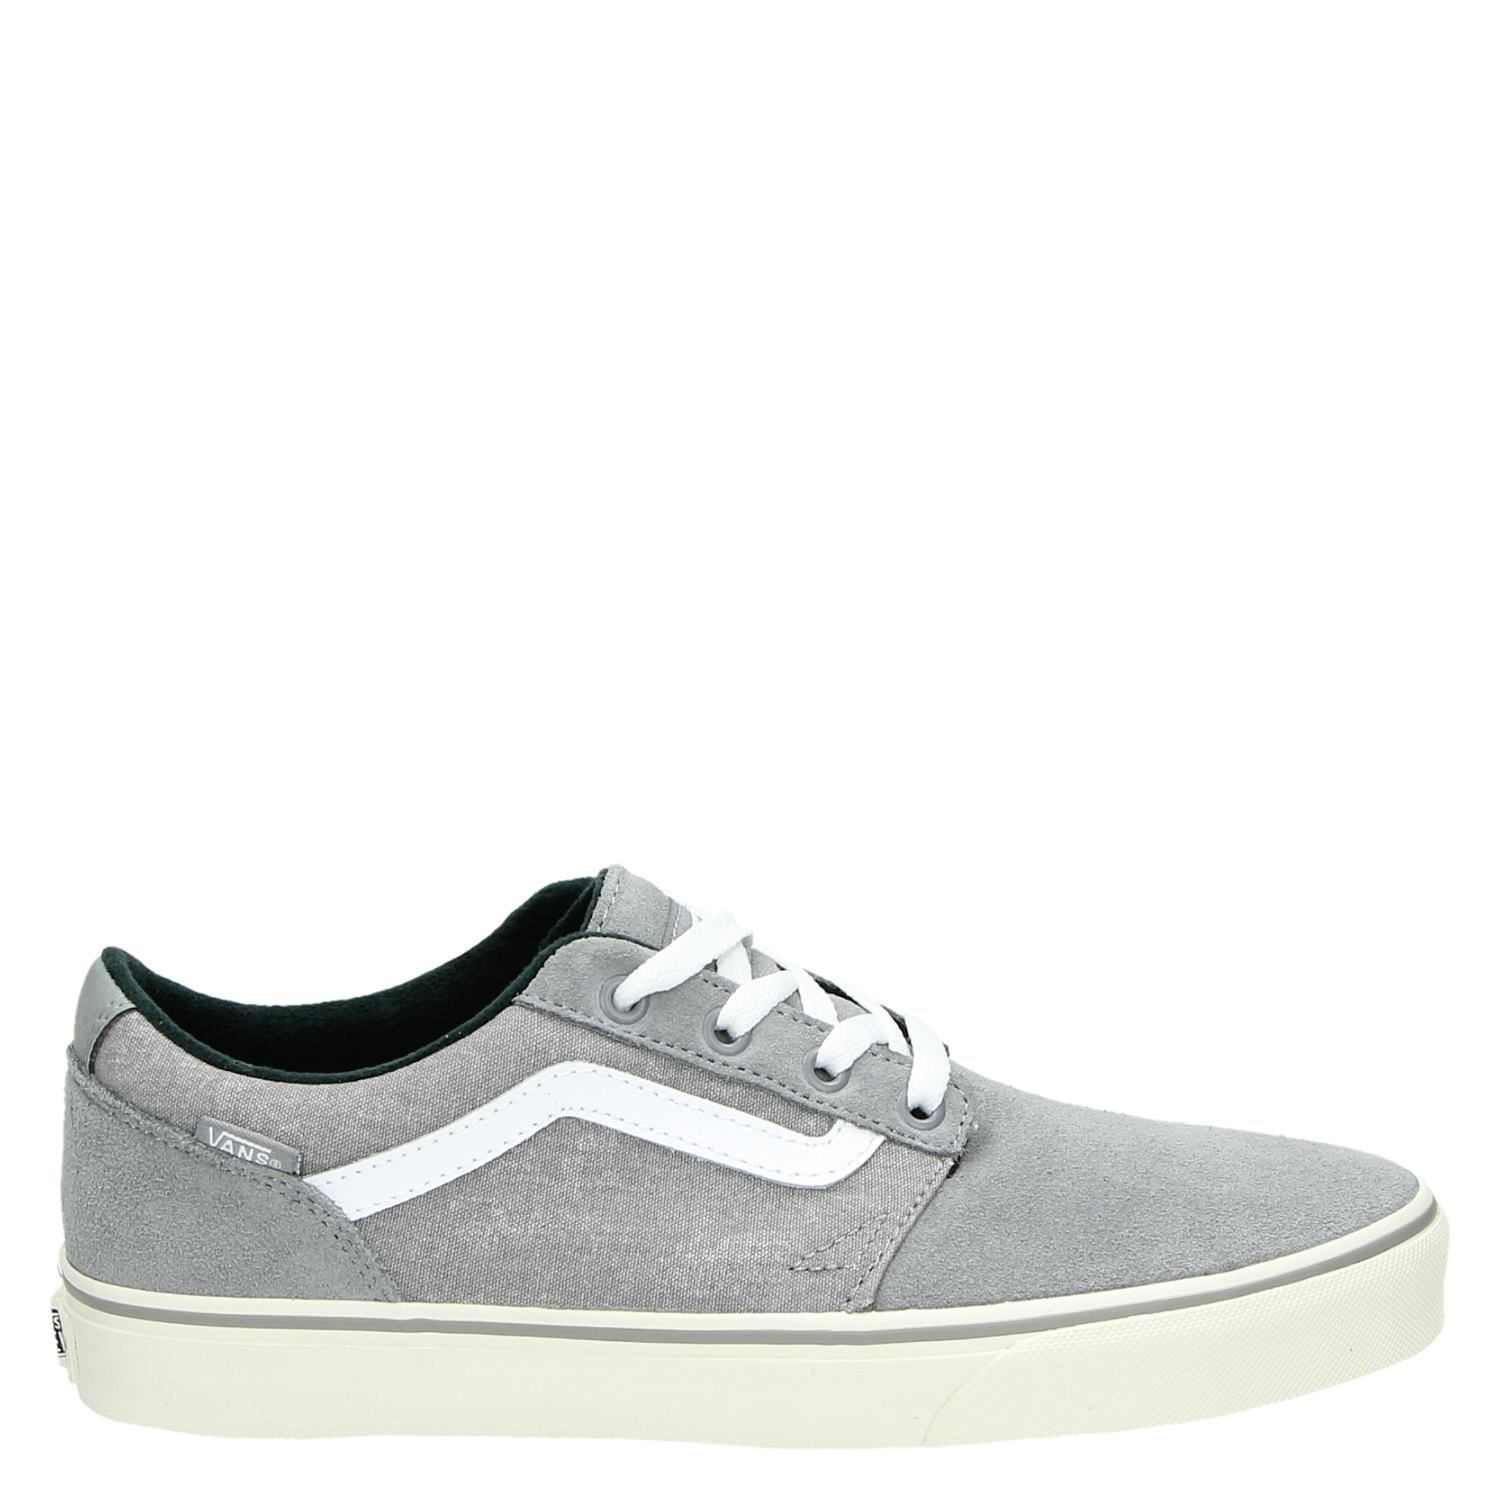 Fourgons Gris Chaussures Pour Hommes Fixa4D5PU